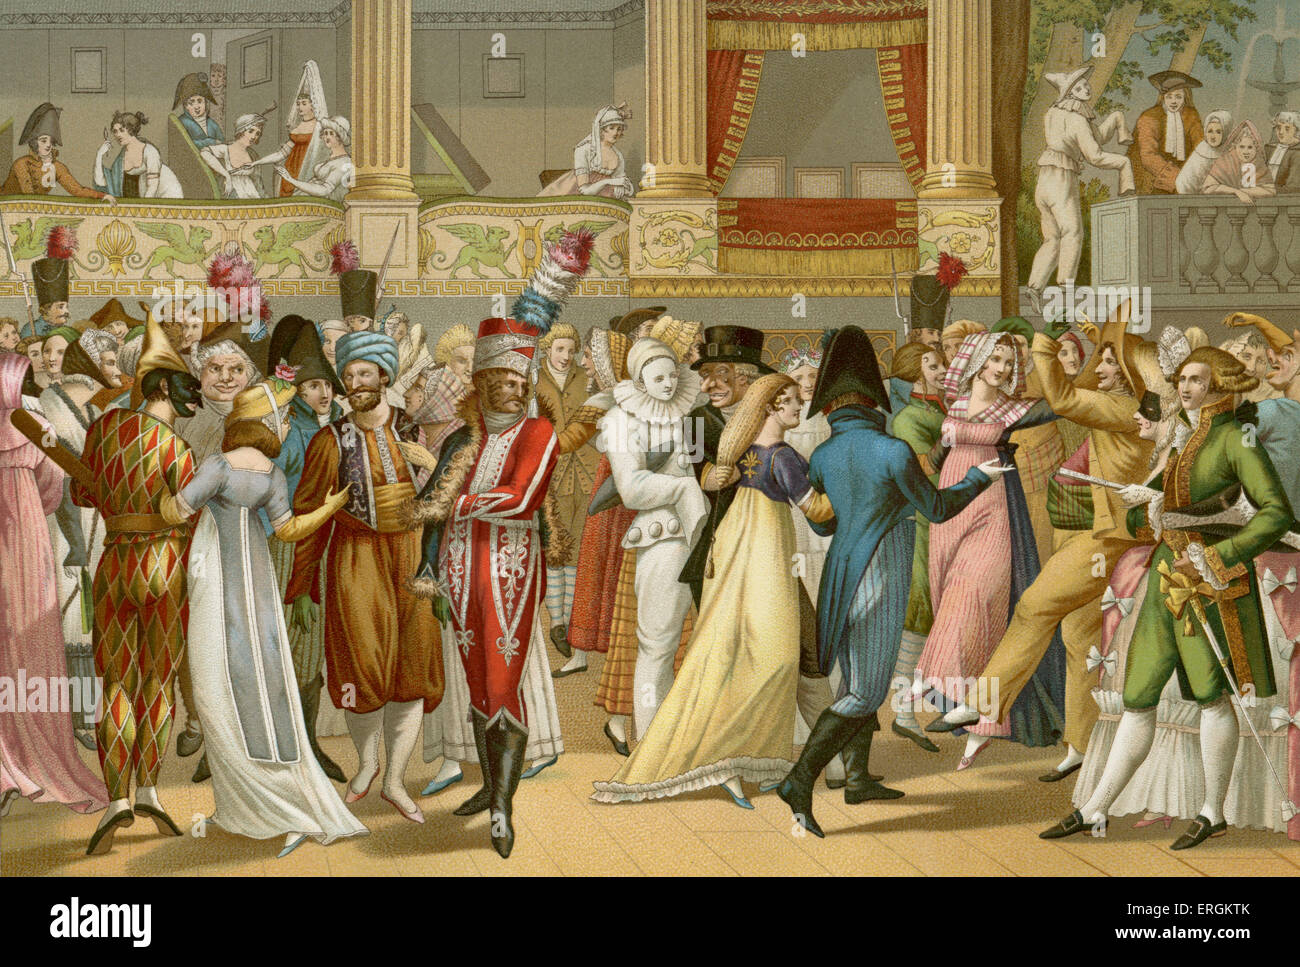 Costume Ball at the Opera - after engraving by Jean Francois Bosio after 1800. Paris & Harlequin Costume Stock Photos u0026 Harlequin Costume Stock Images - Alamy